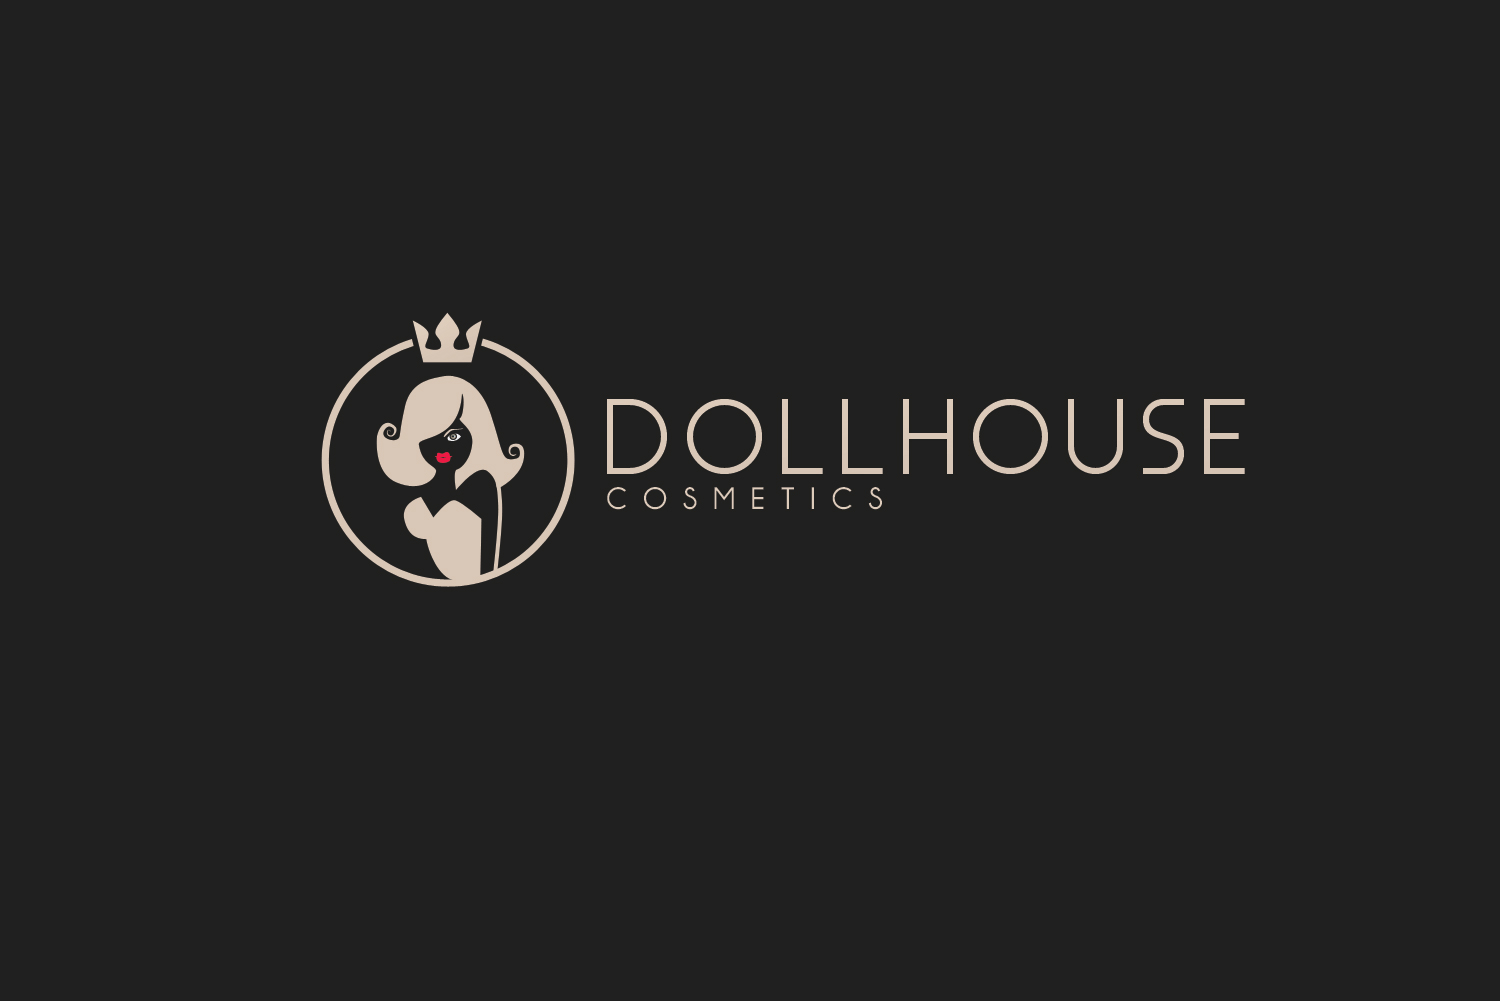 Modern Upmarket Makeup Logo Design For Dollhouse Cosmetics By